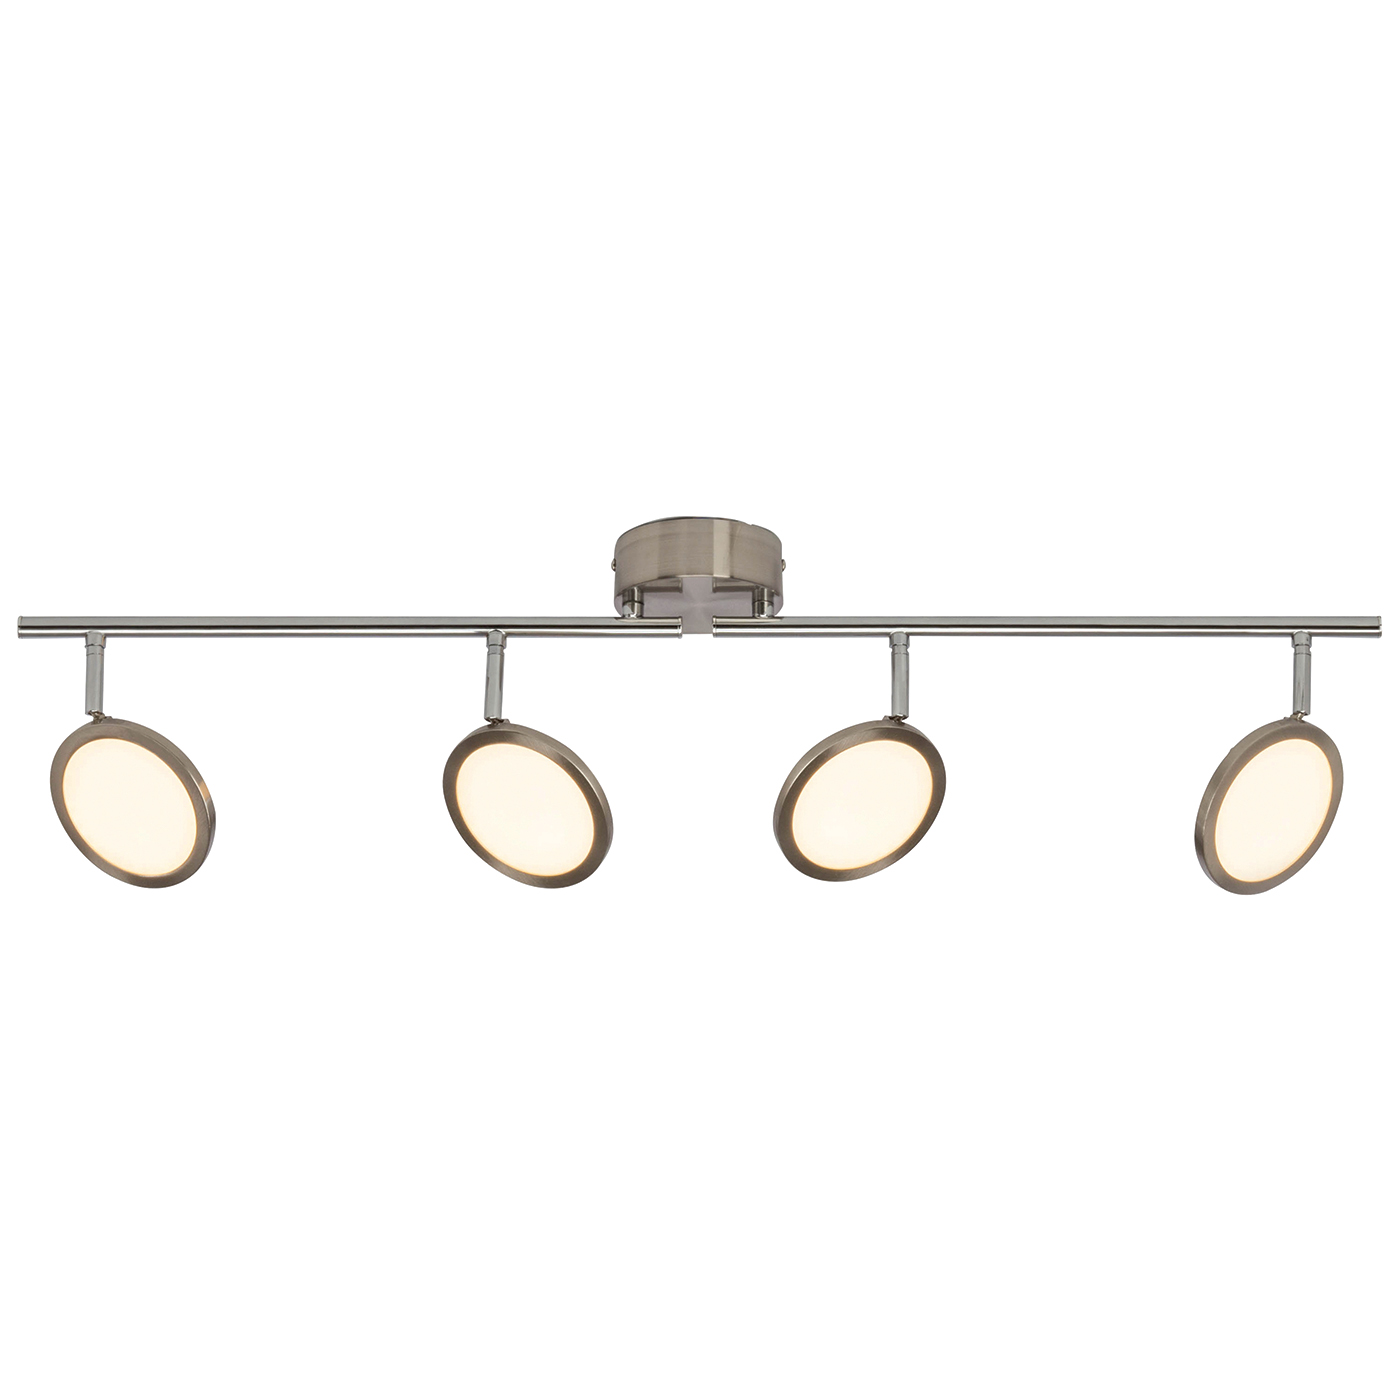 Endon Pluto ceiling spotlight bar 4x 5W Satin nickel effect plate opal plastic Thumbnail 1